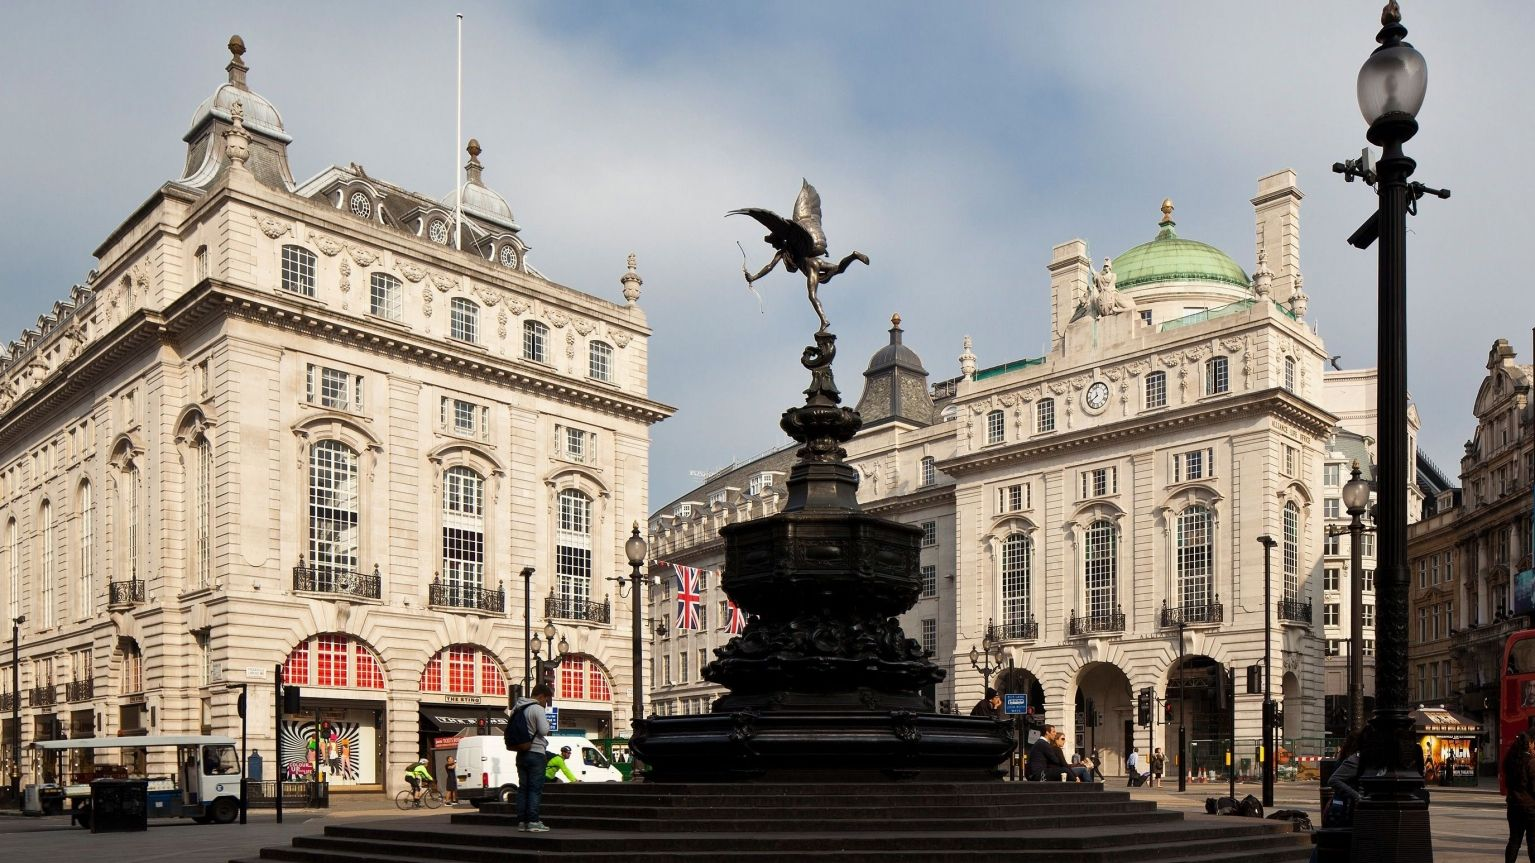 hotel cafe royal london piccadilly circus